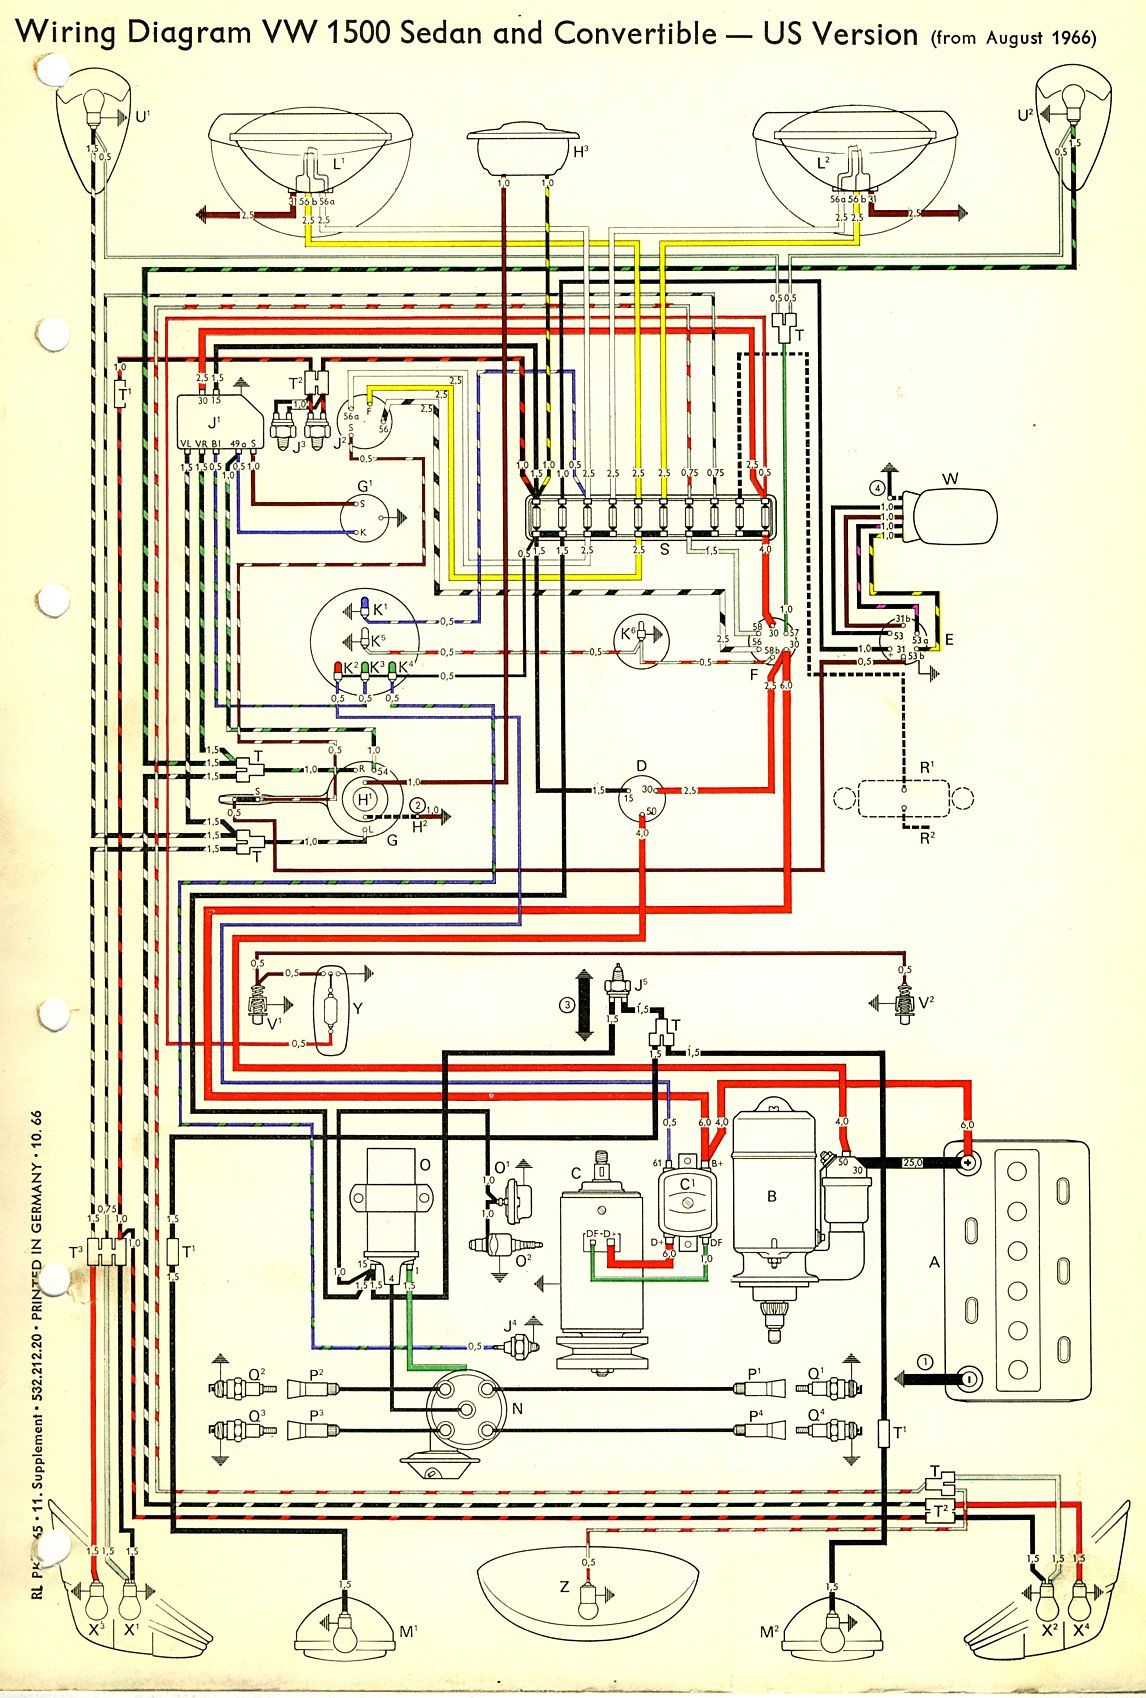 1adf990c0efb617c789fdd21338448b0 1967 beetle wiring diagram (usa) thegoldenbug com best 1967 vw vw beetle wiring diagram at creativeand.co